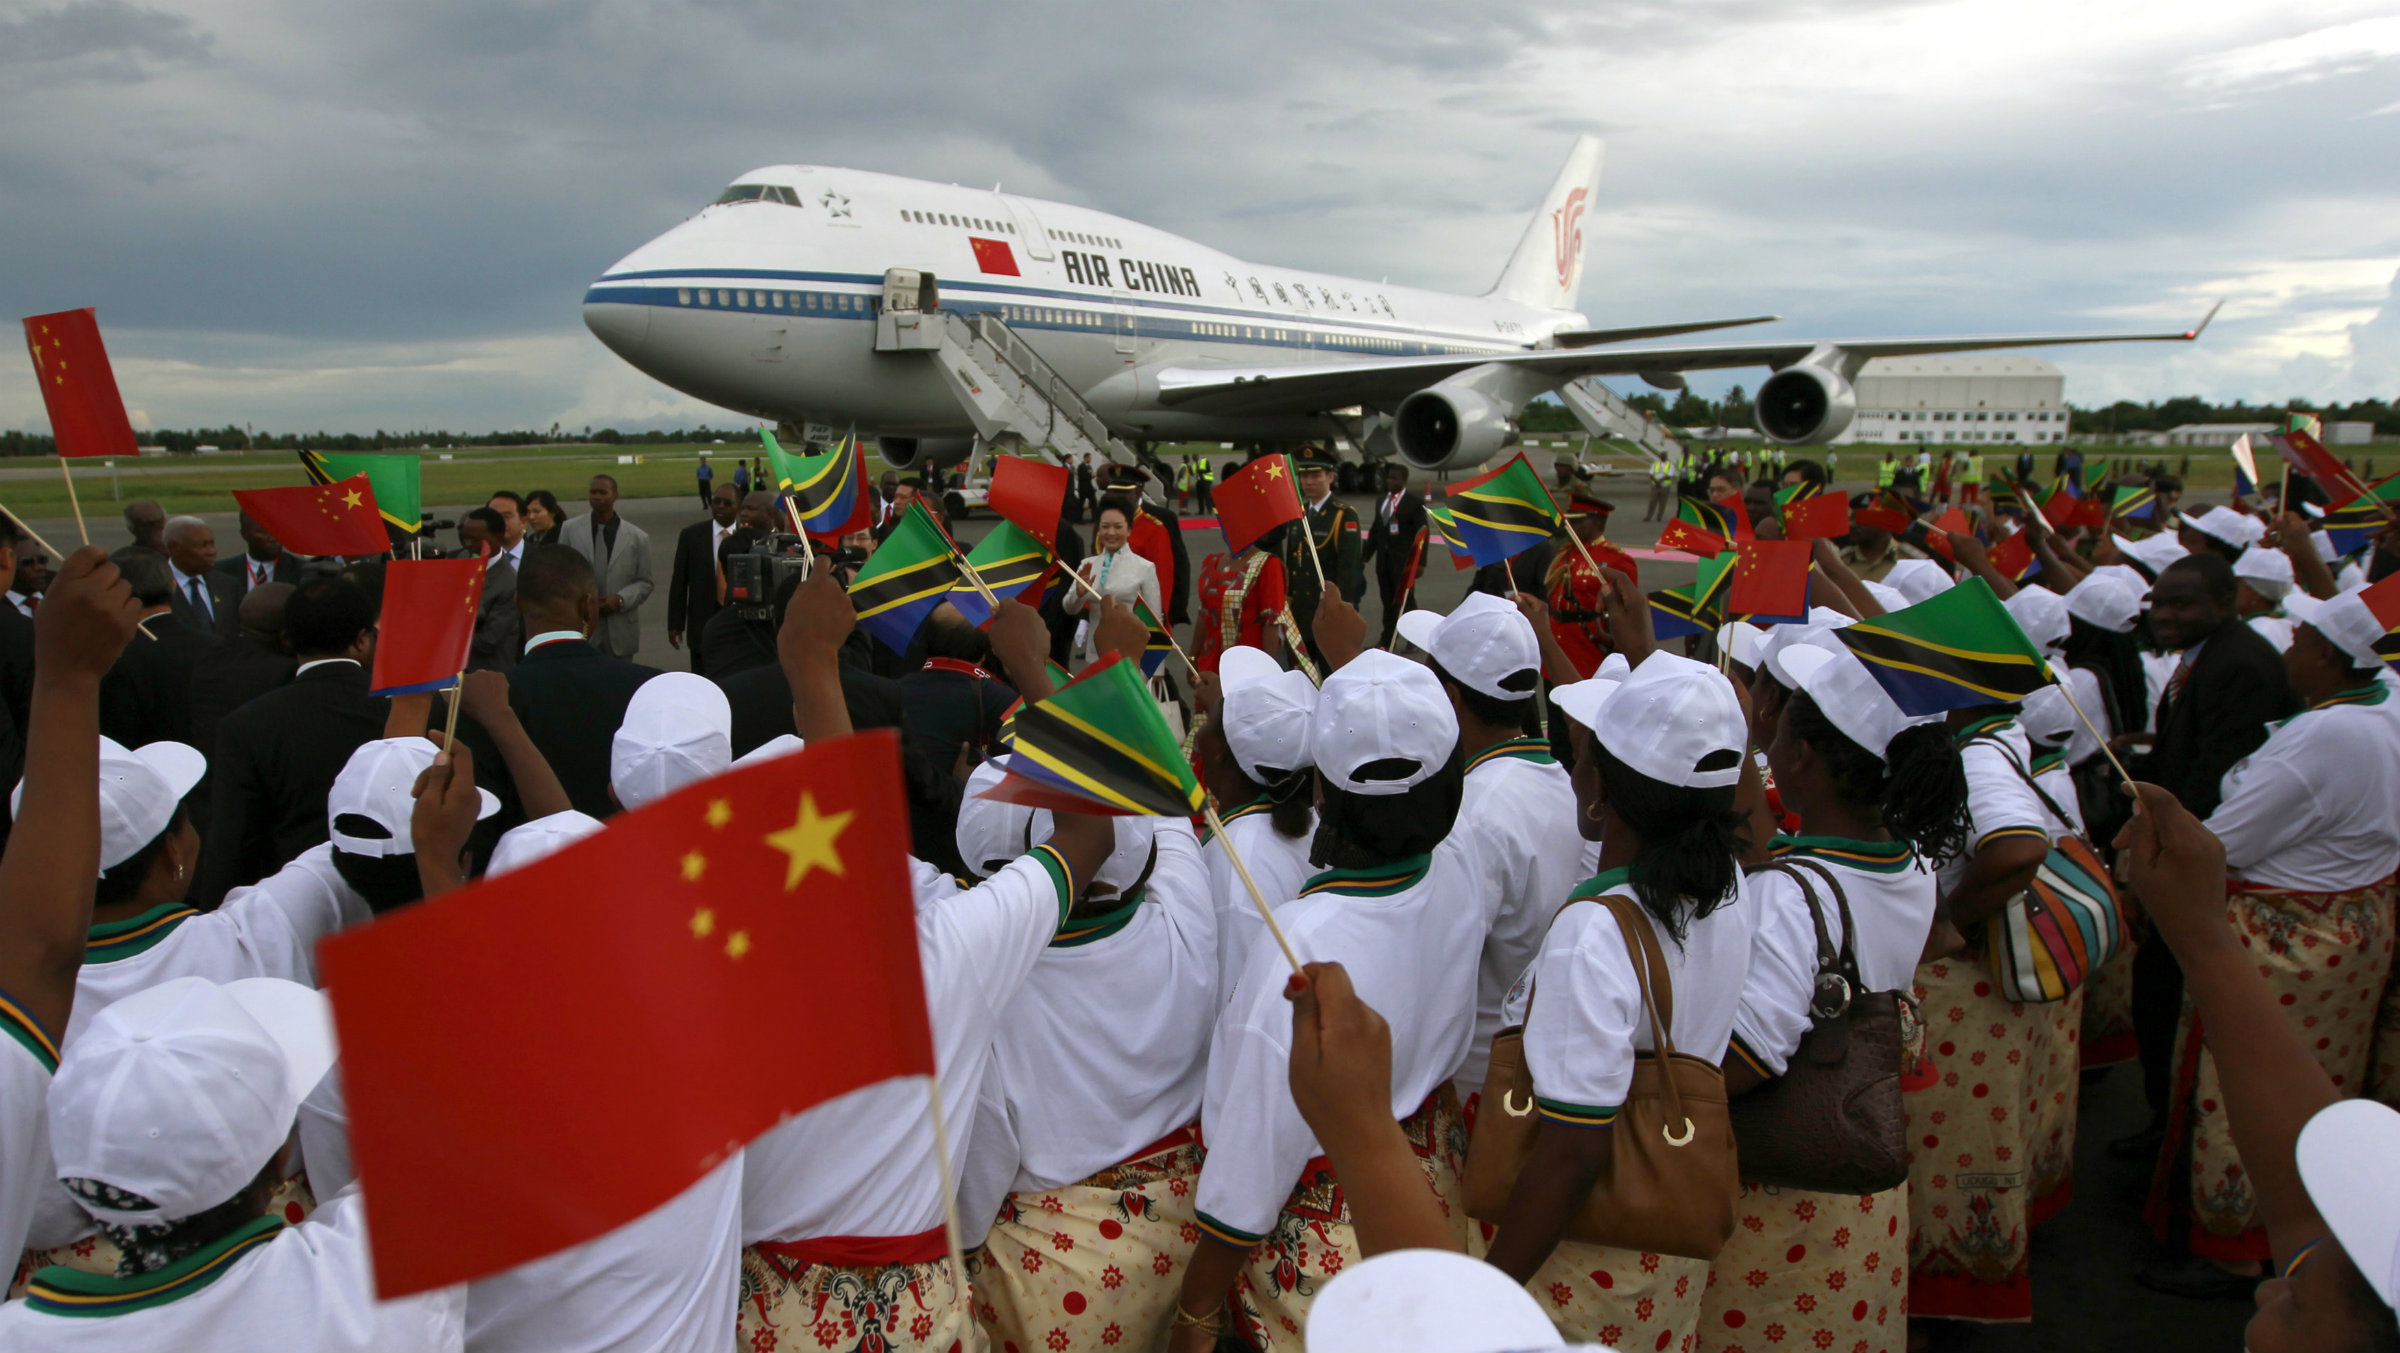 The Air China presidential plane in Tanzania during Xi Jinping's March 2013 visit.